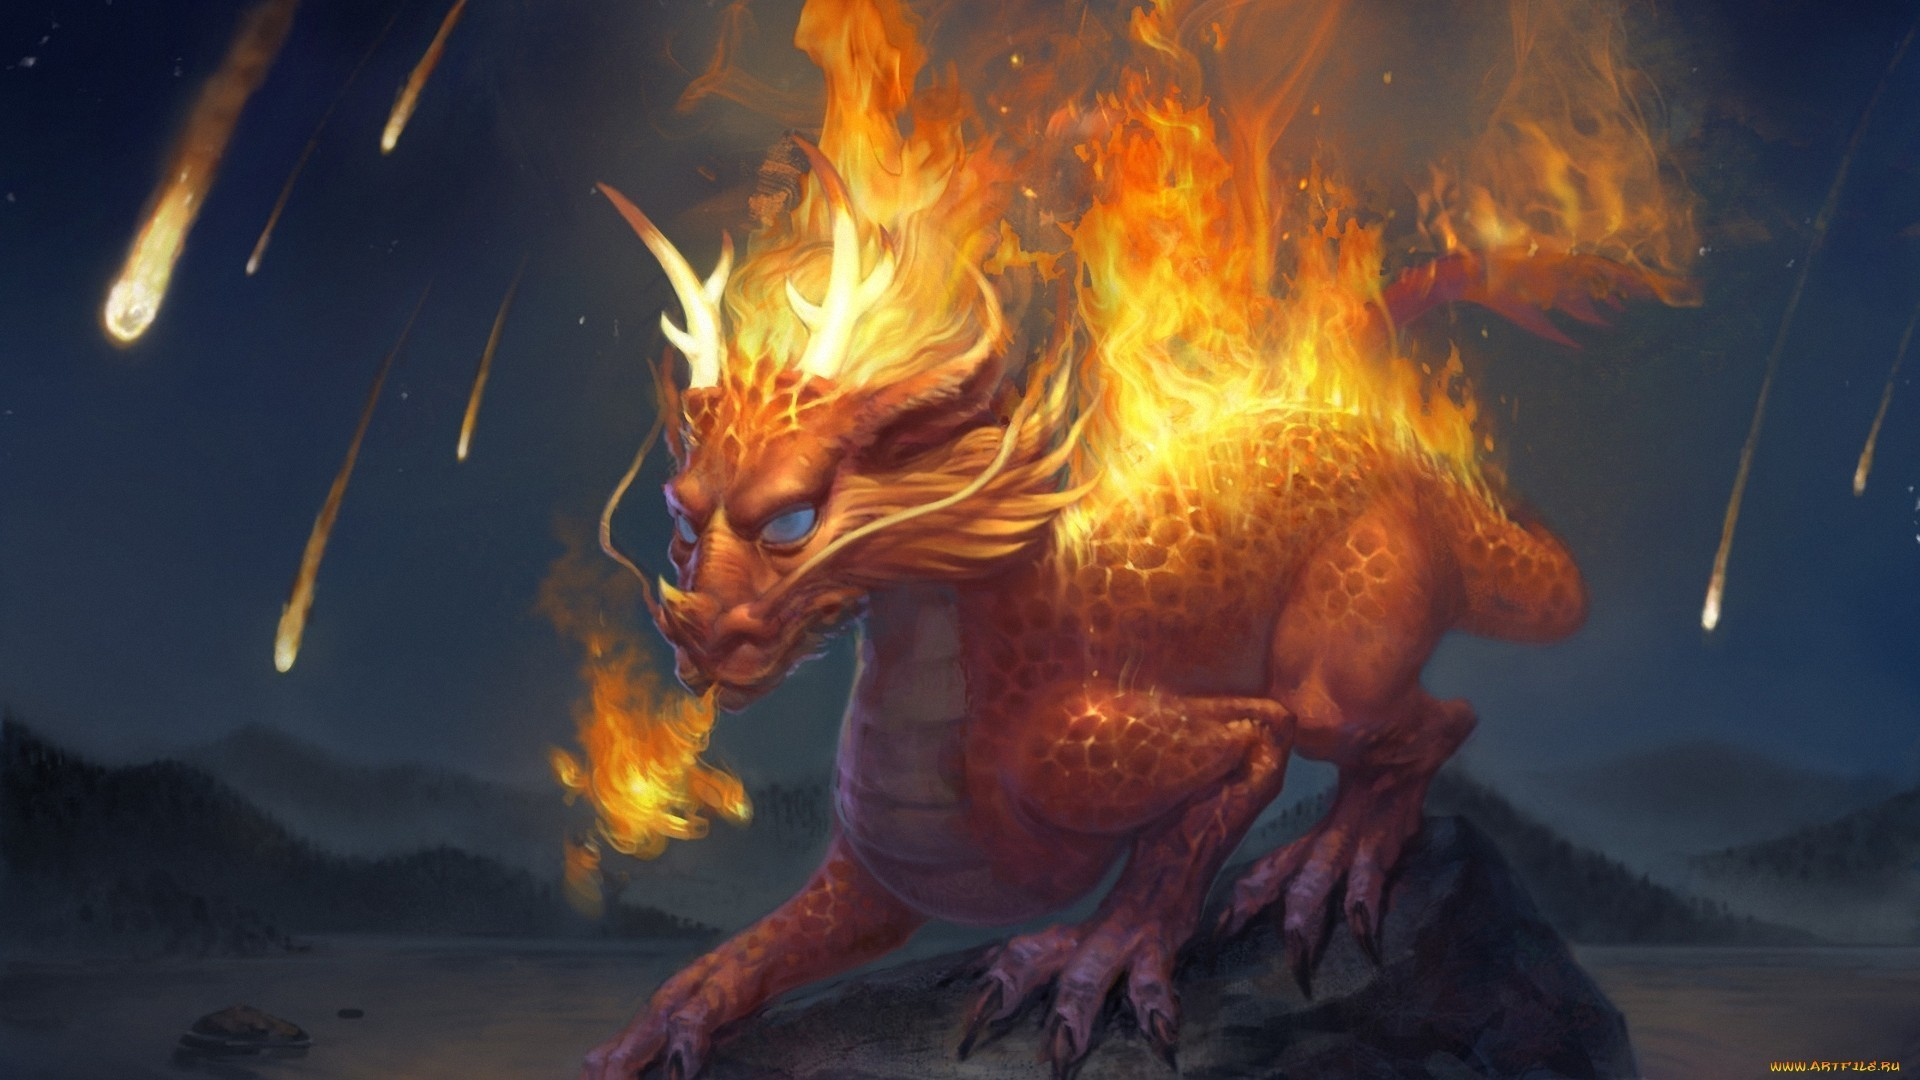 2880x1800 Wallpapers For Awesome Fire Dragon